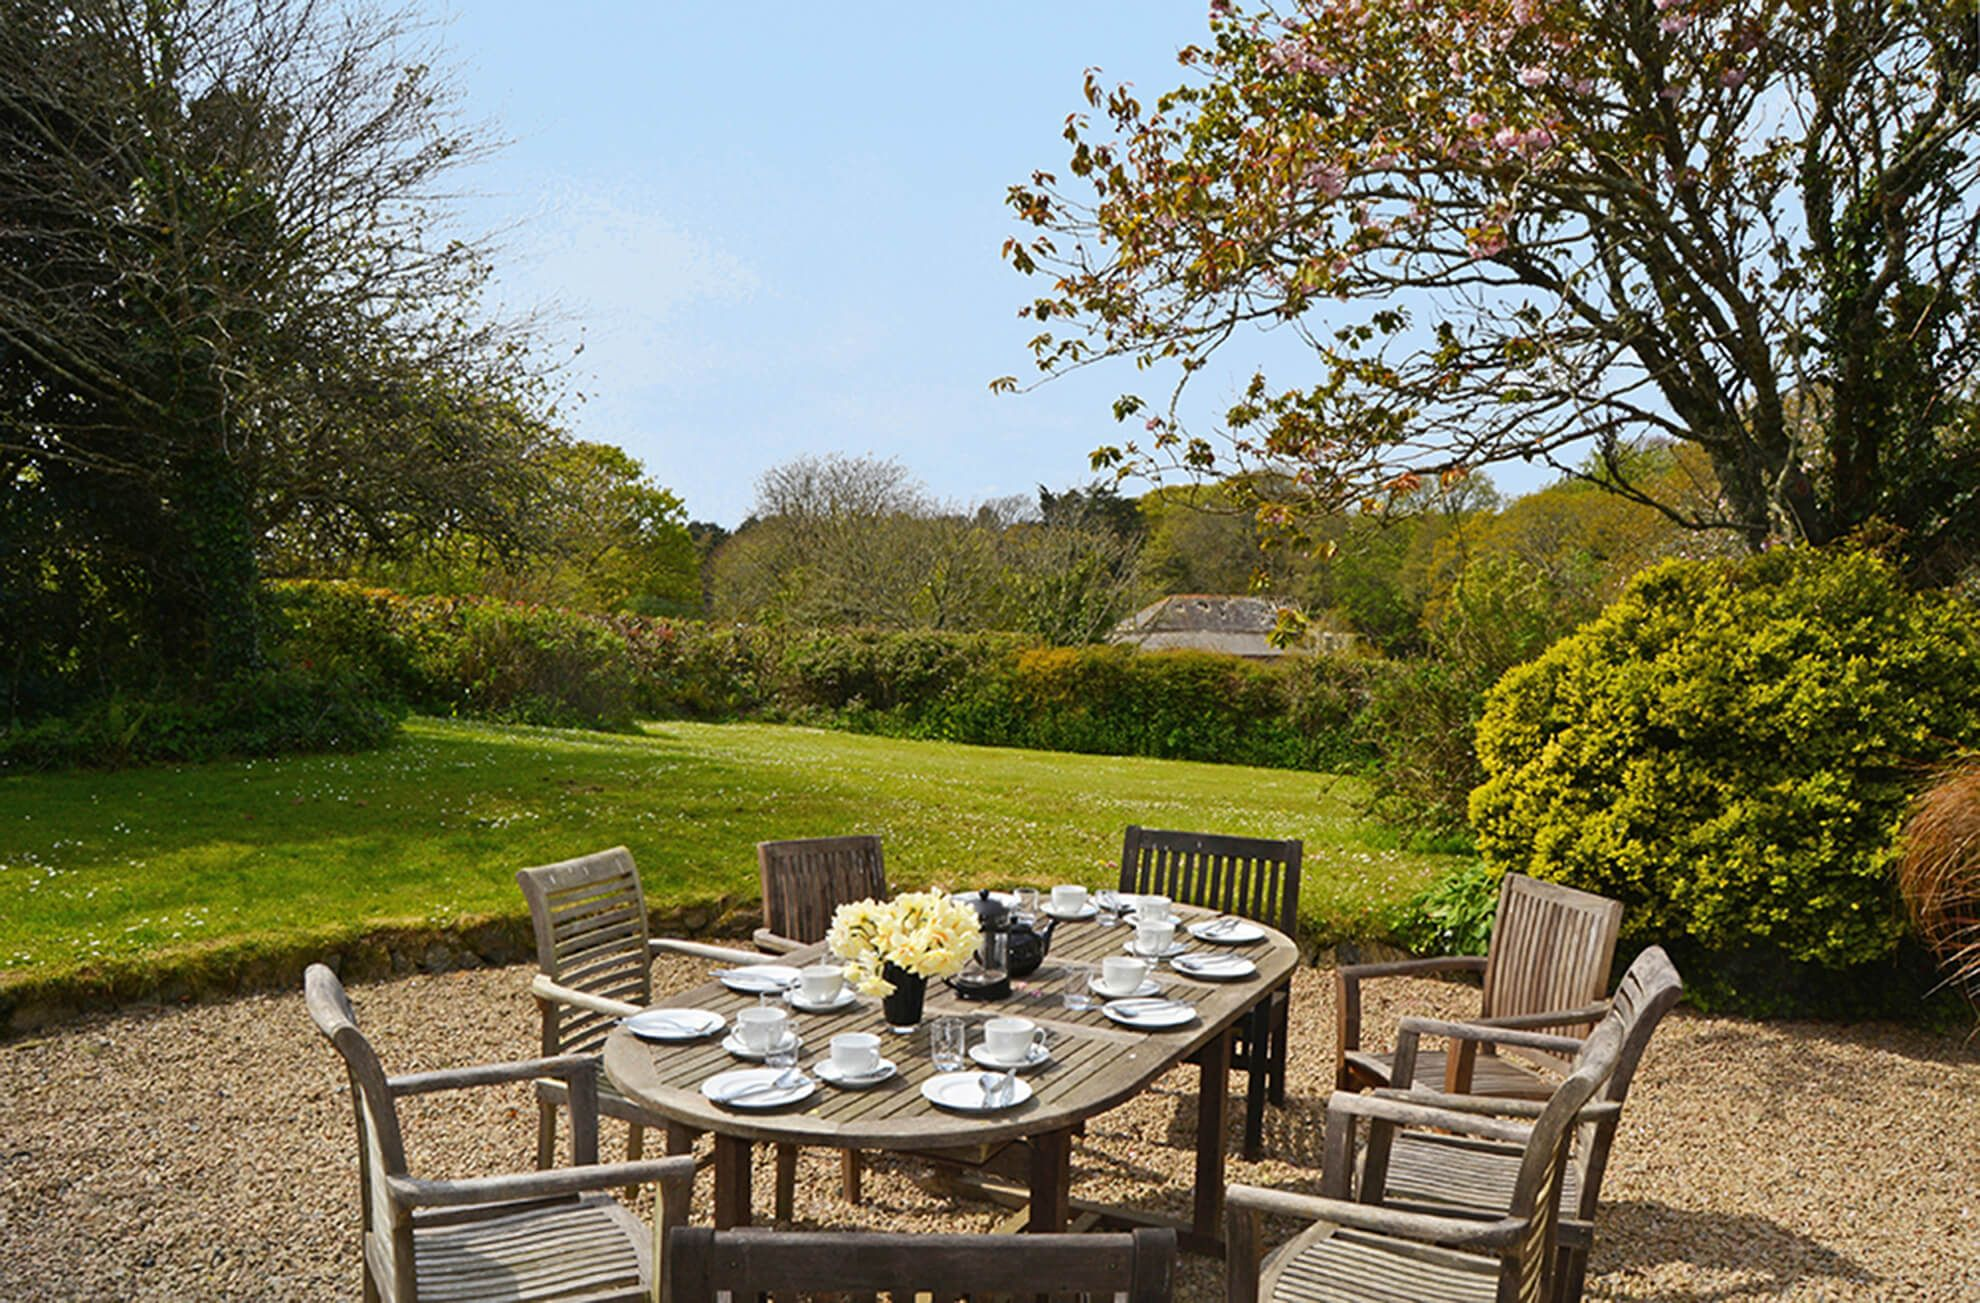 Sunny barbecue terrace, perfect for al fresco dining and soaking up the sun